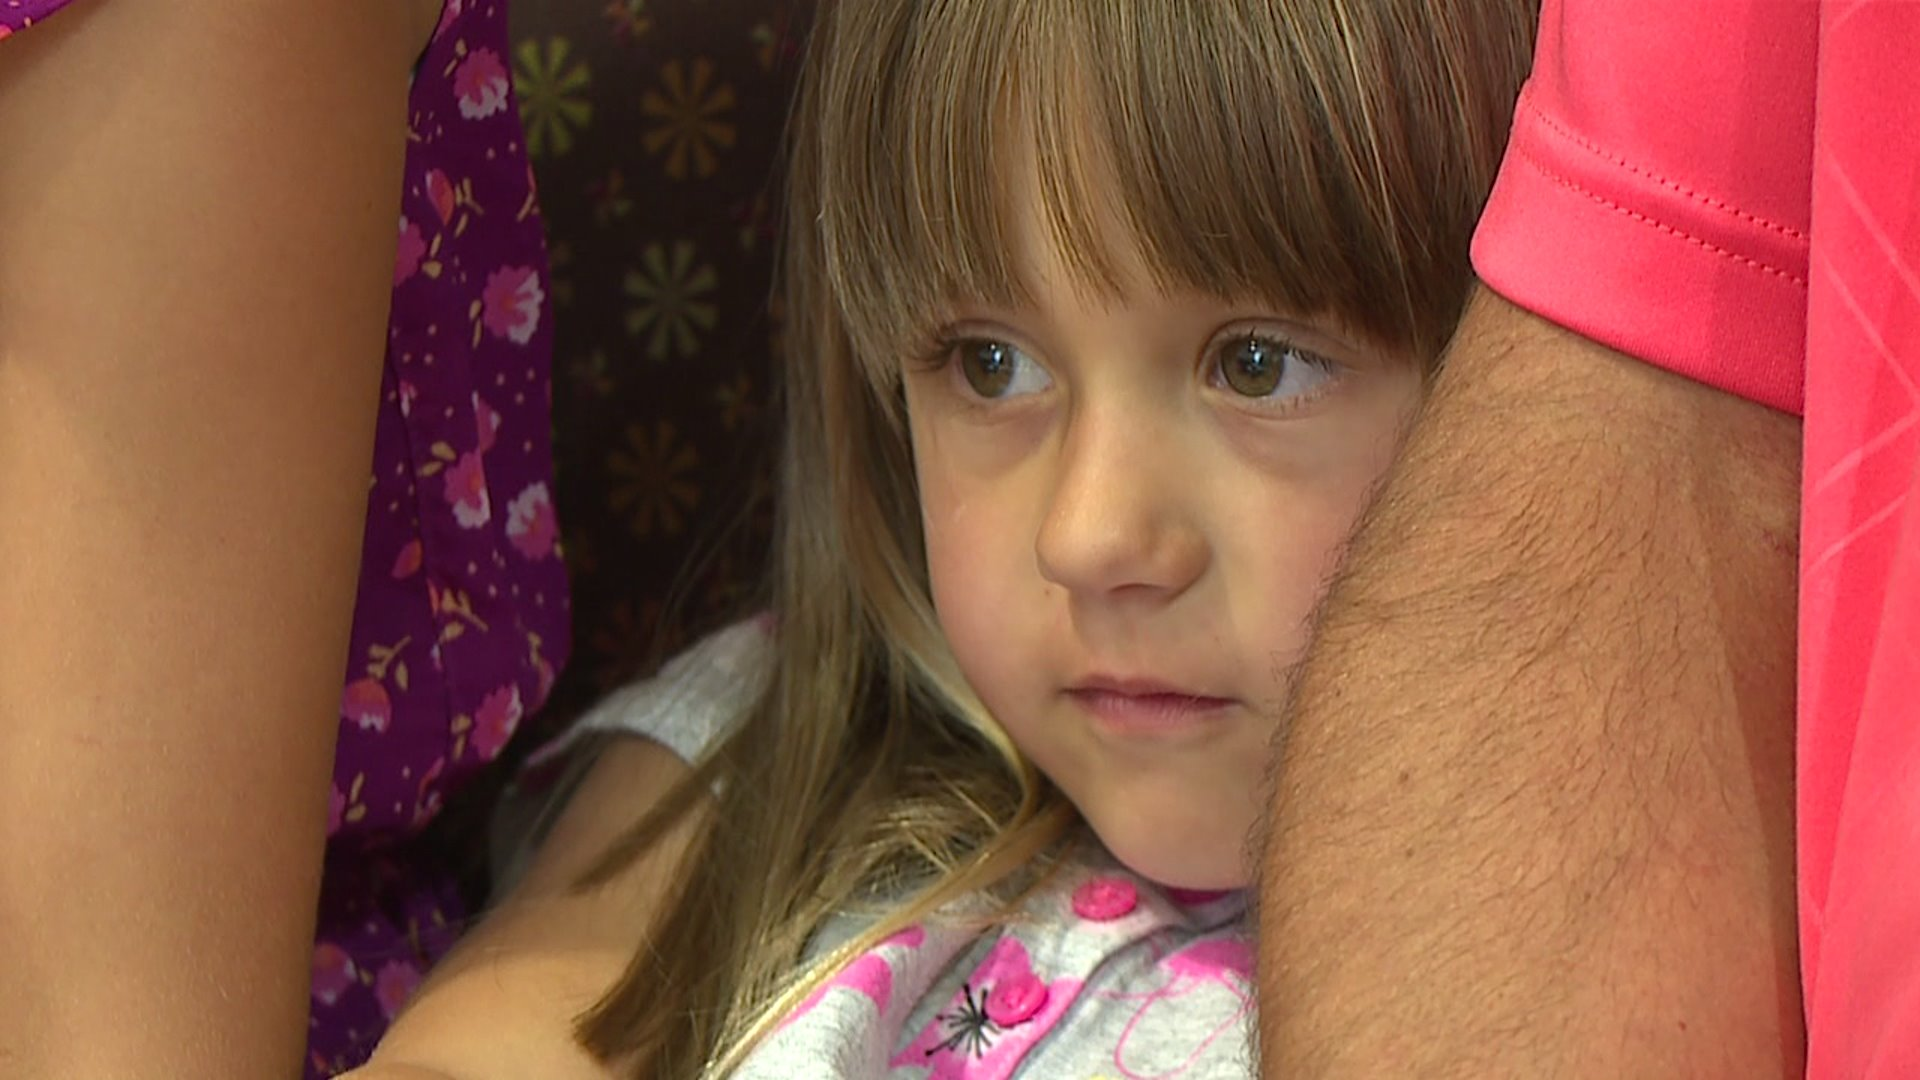 Cochlear Implants Help Toddler Hear Again After Ear Infections Left Her Deaf